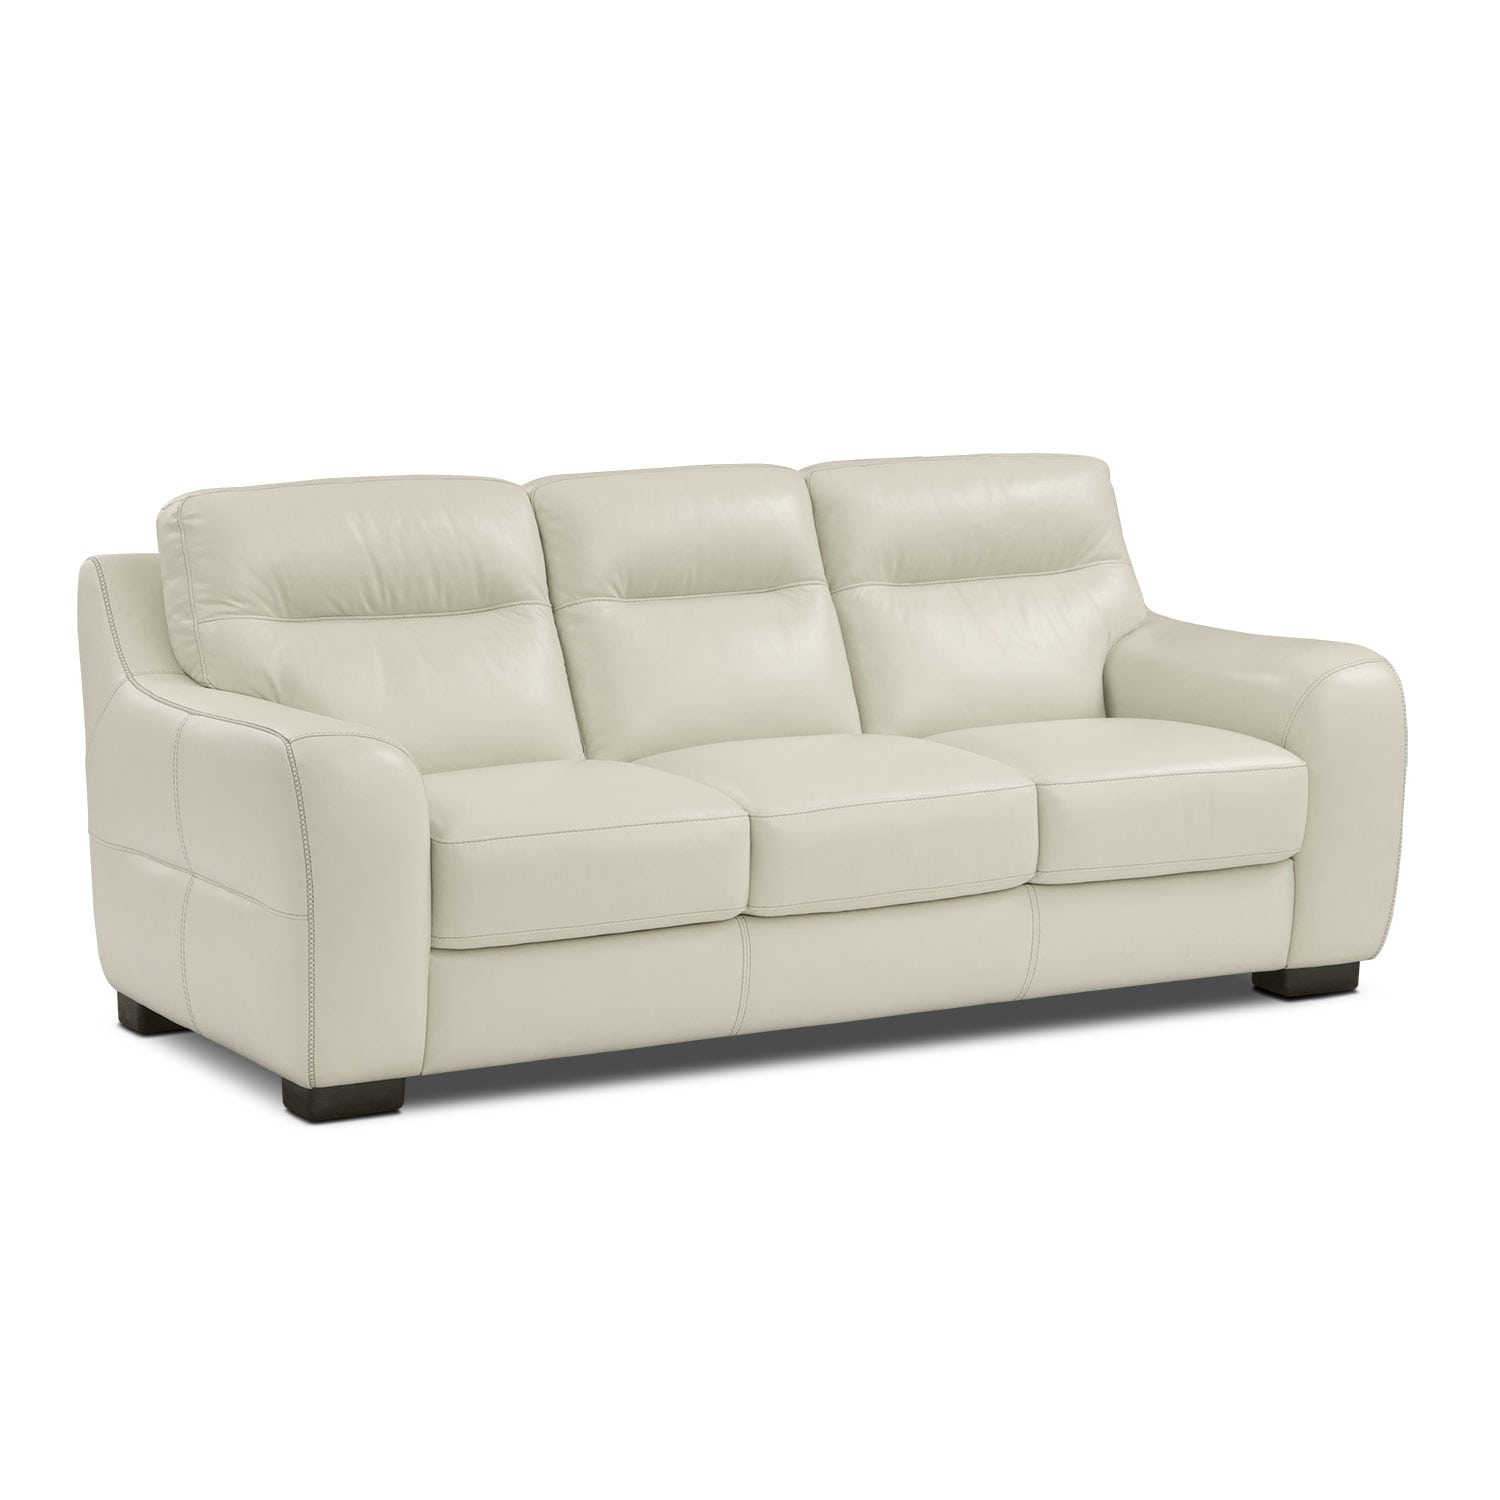 Sofas Leather Living Room Furniture Value City Furniture